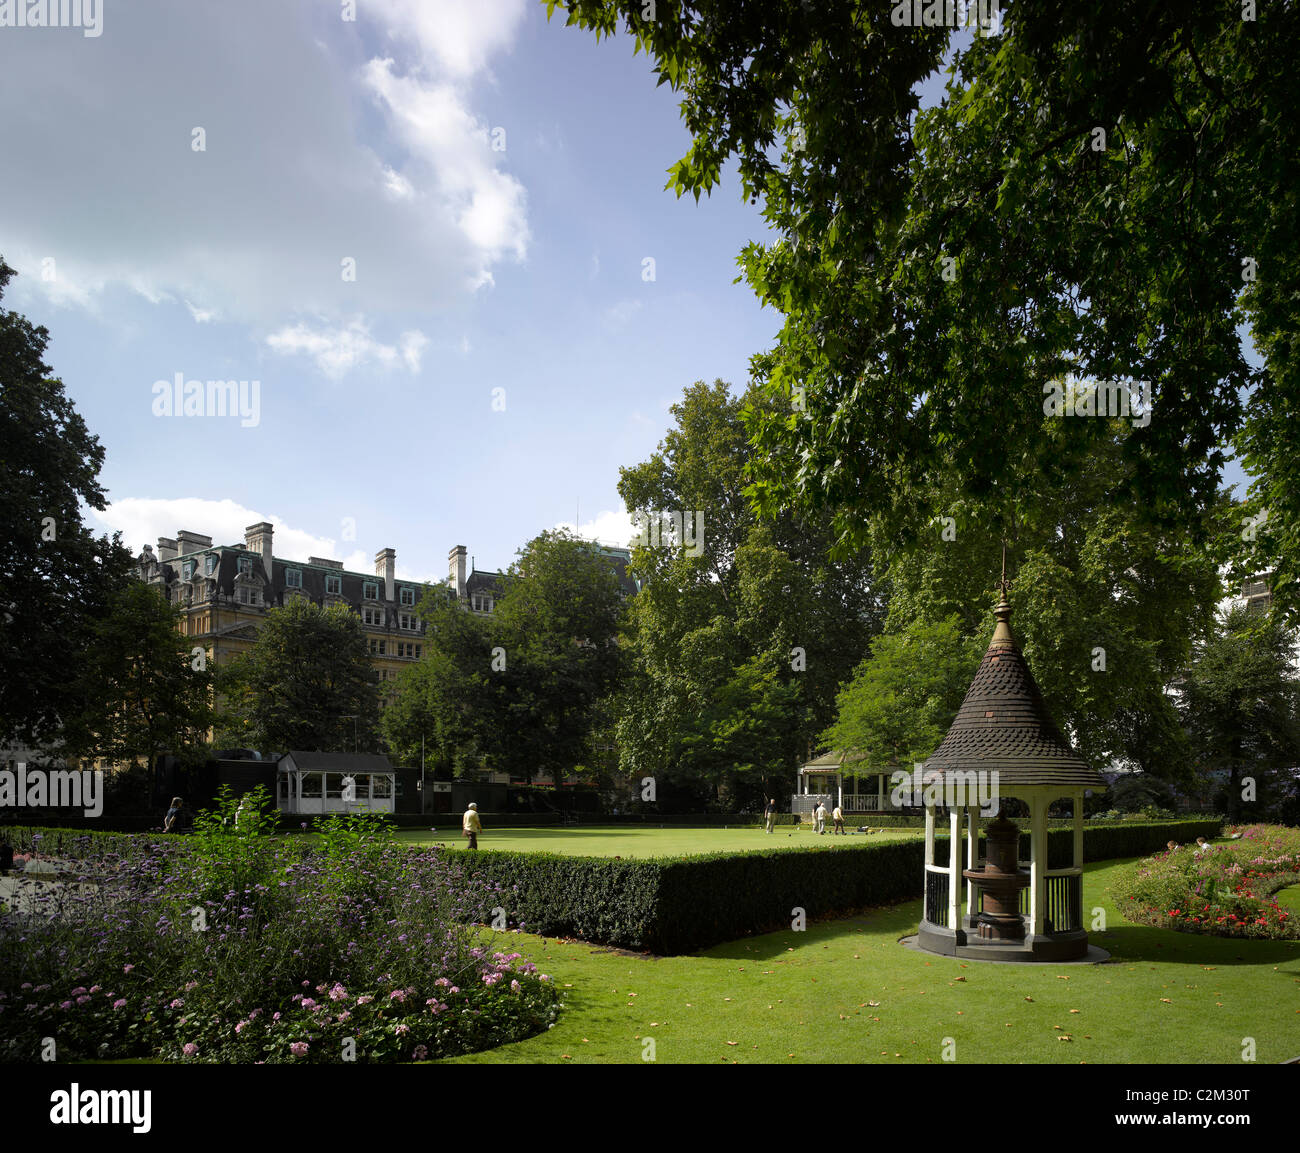 Finsbury Circus bowling green and gardens, London. - Stock Image